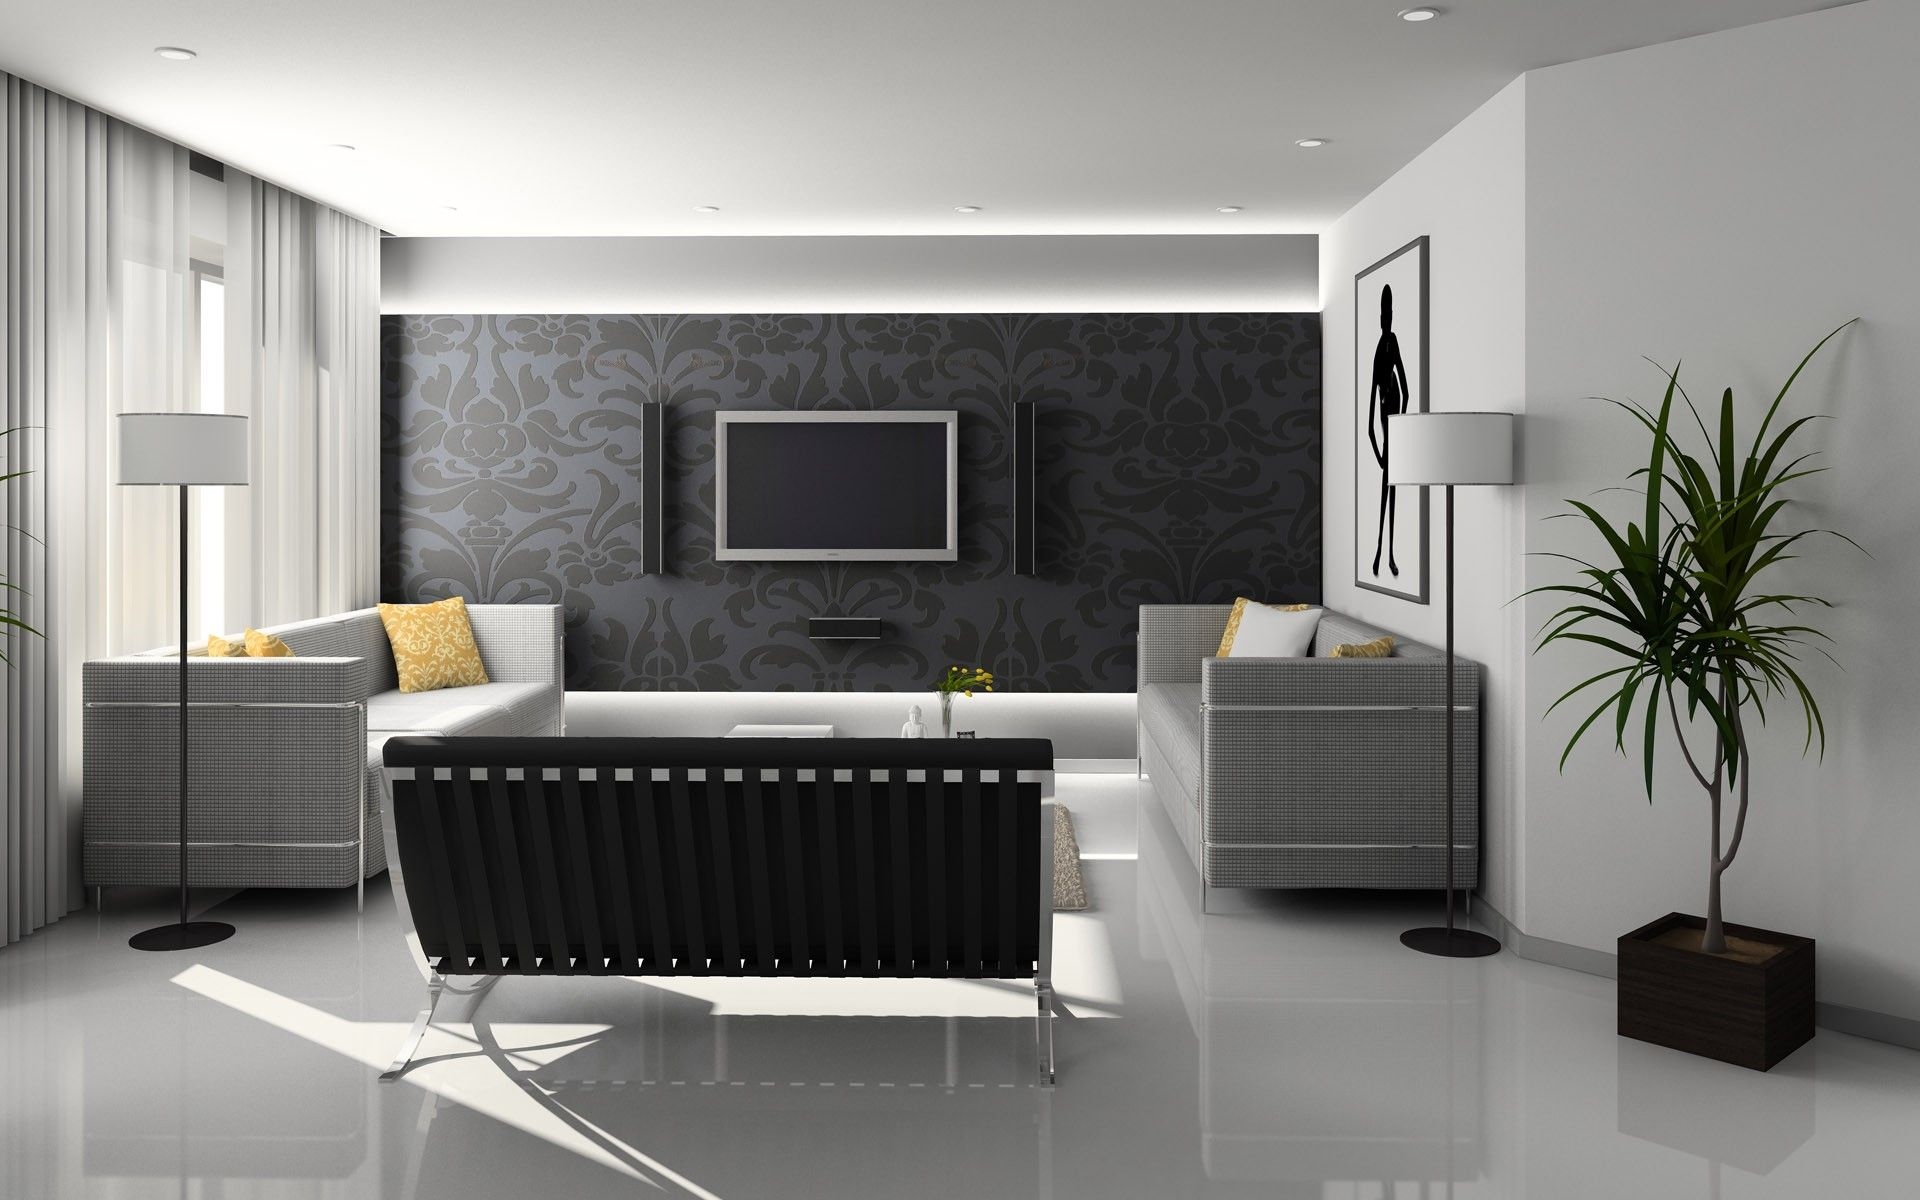 Black Feature Wall Adds Drama · Interior Design ...